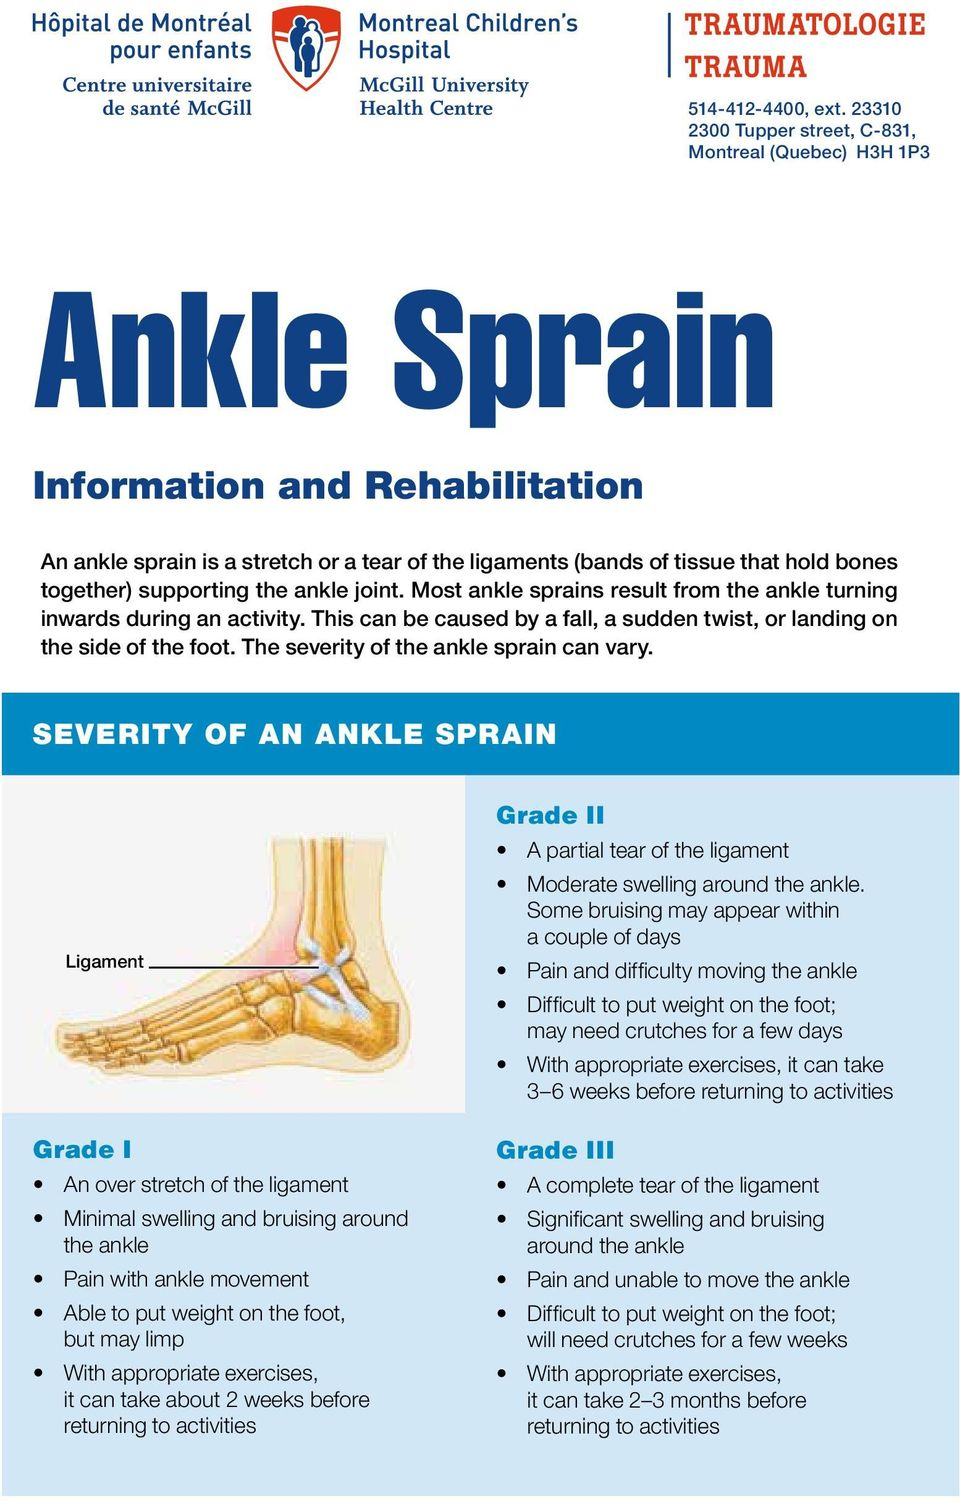 together) supporting the ankle joint. Most ankle sprains result from the ankle turning inwards during an activity. This can be caused by a fall, a sudden twist, or landing on the side of the foot.